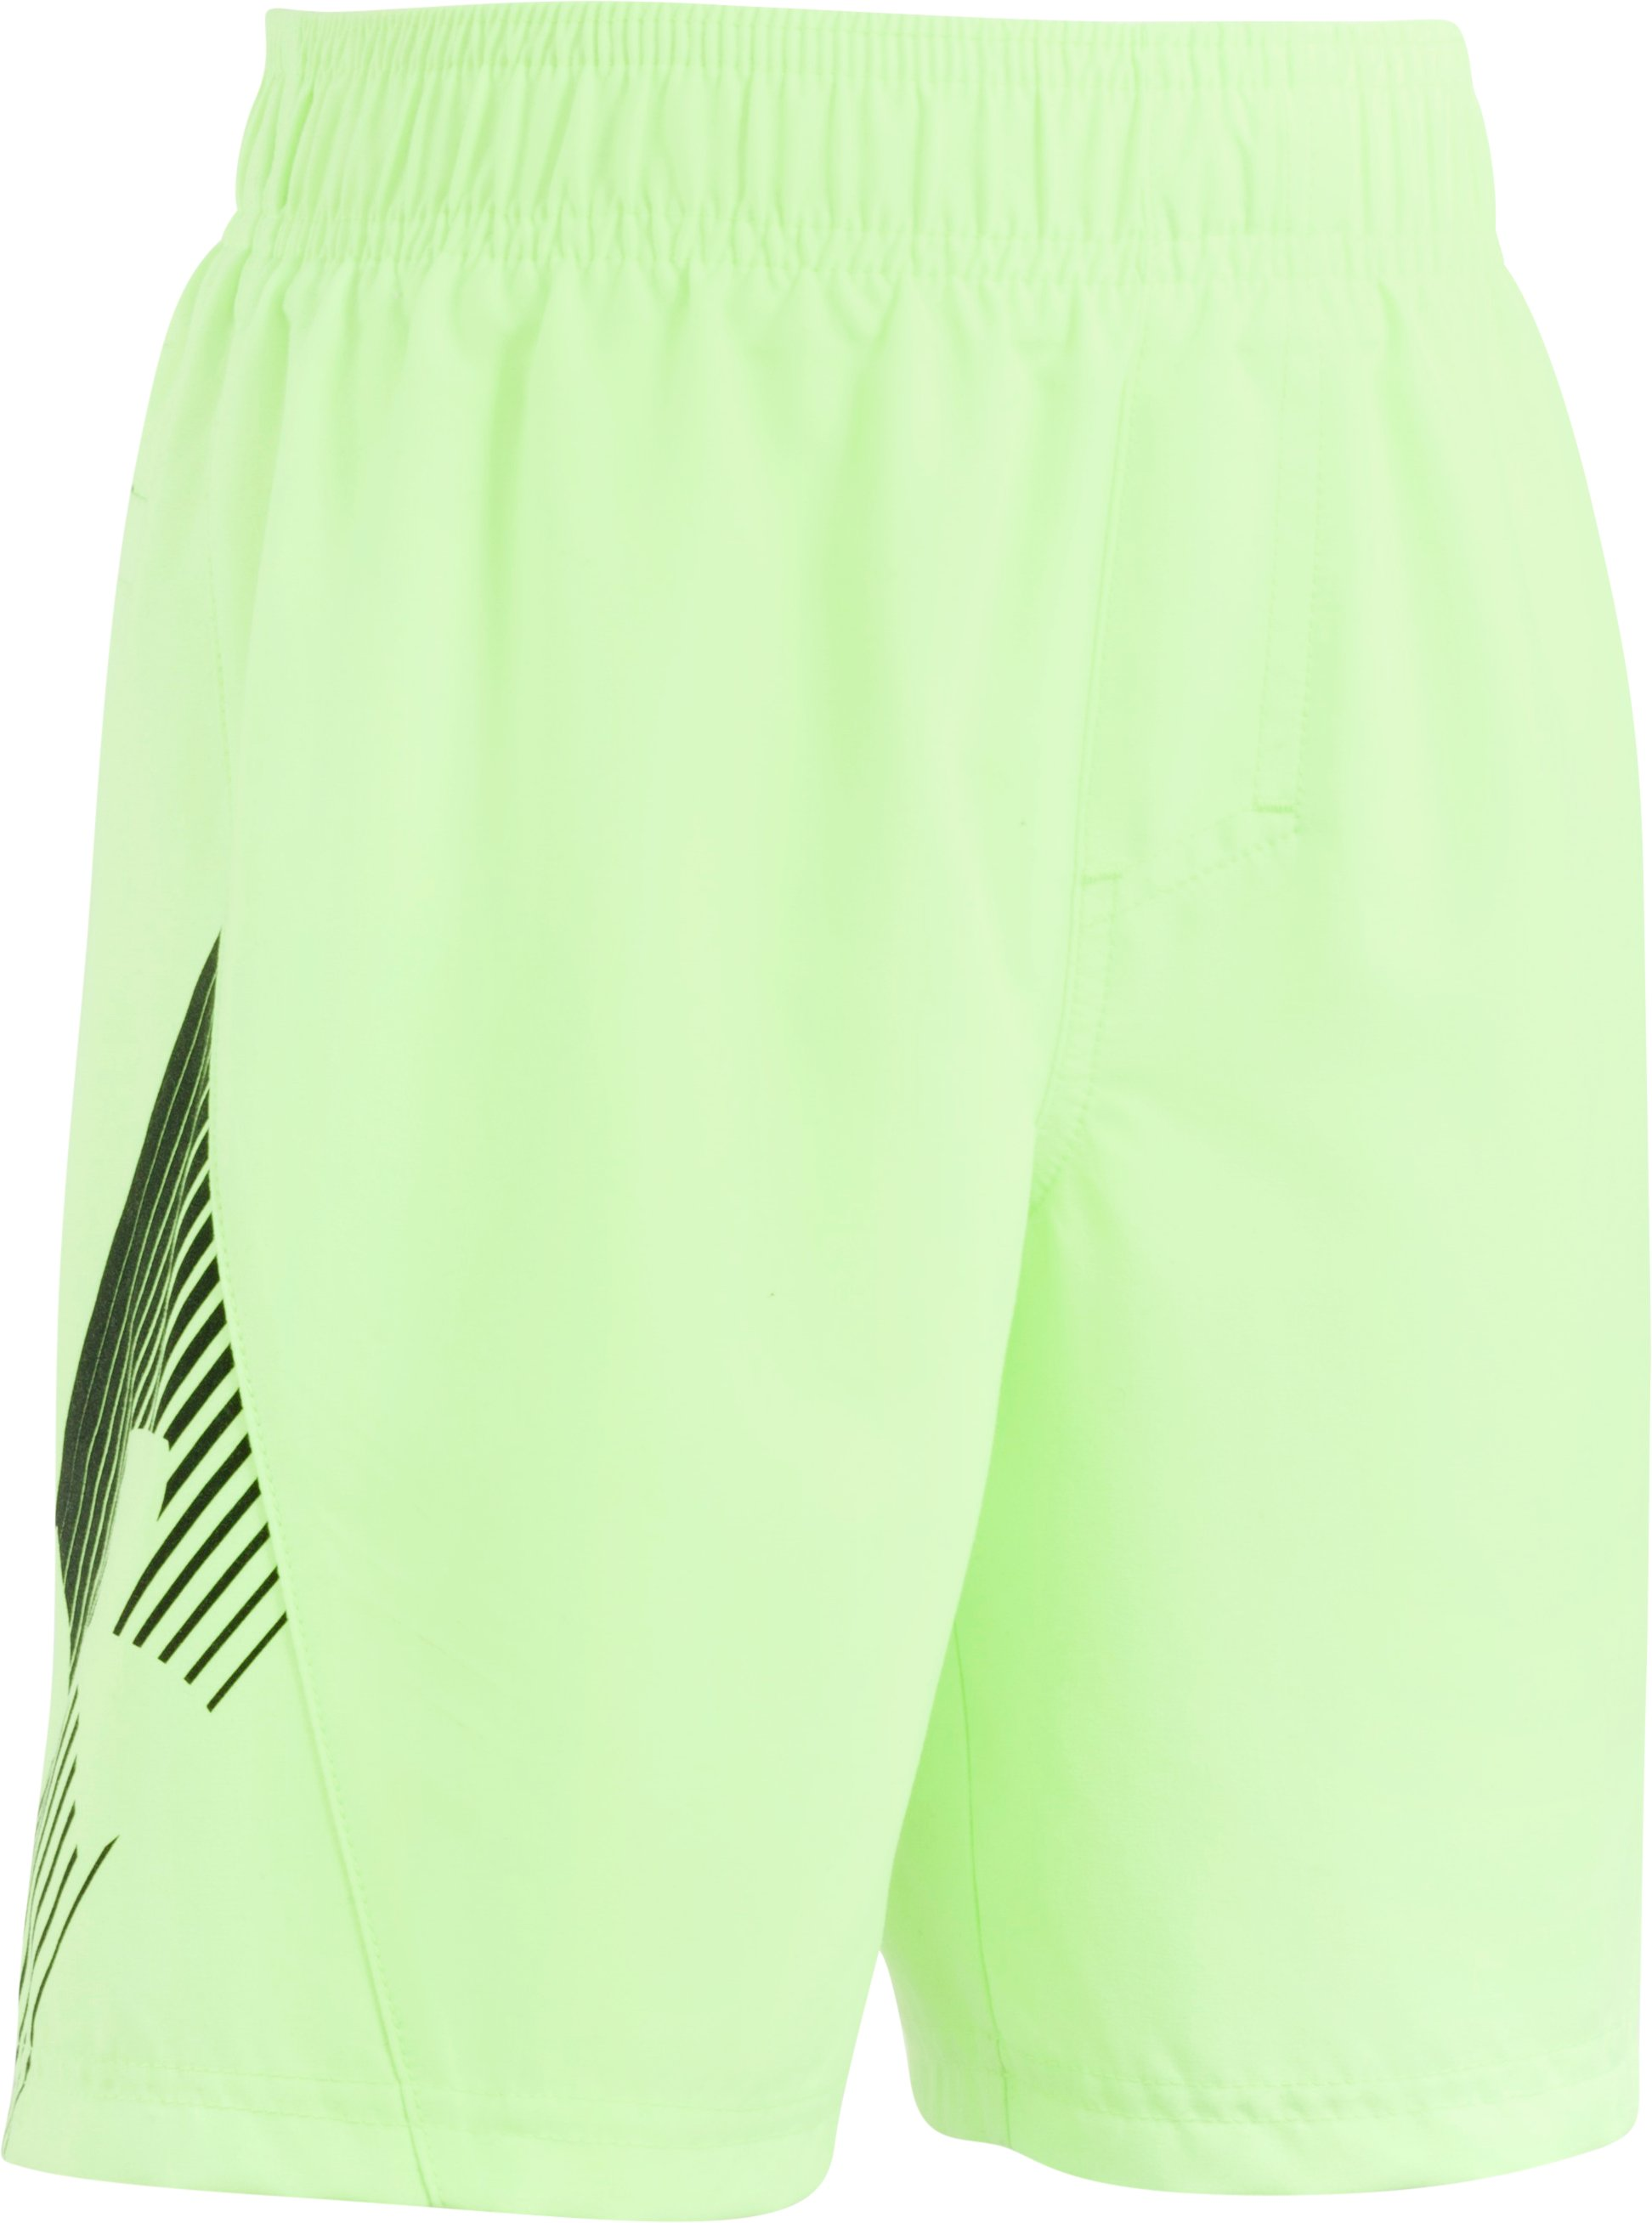 Boys' Toddler UA Entry Solid Boardshorts, FUEL GREEN